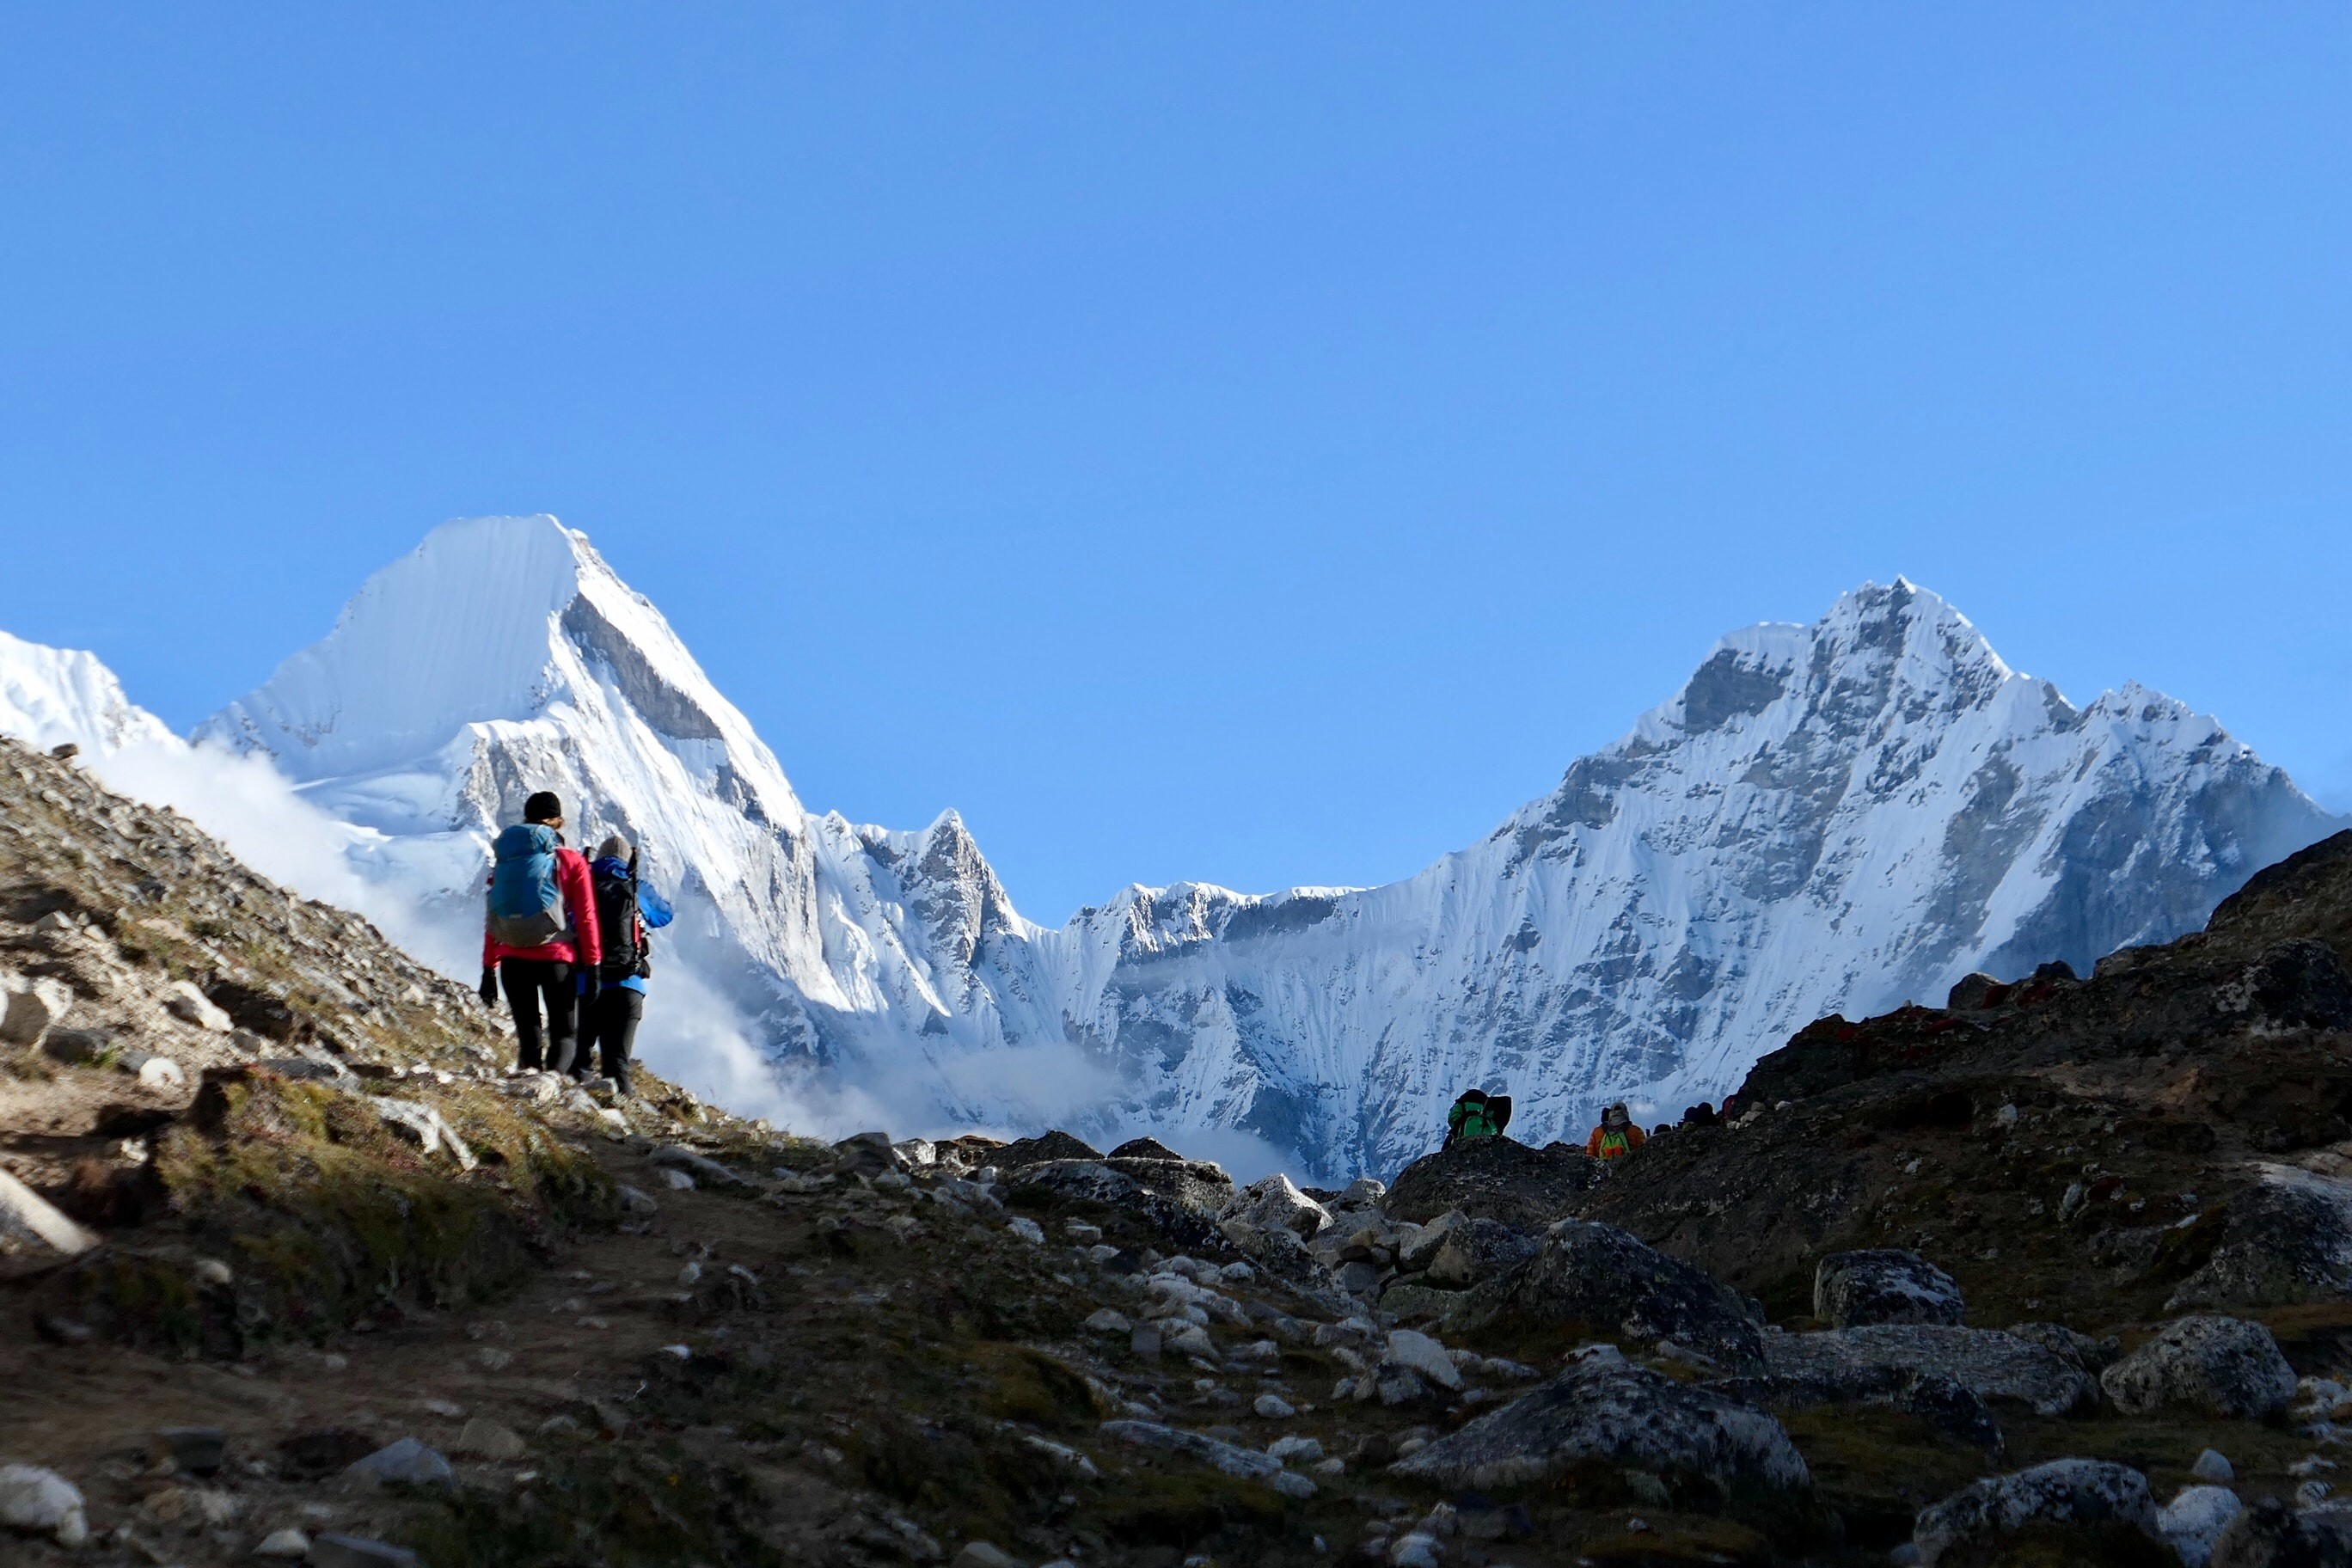 2 hikers walking towards the summit of Mount Everest